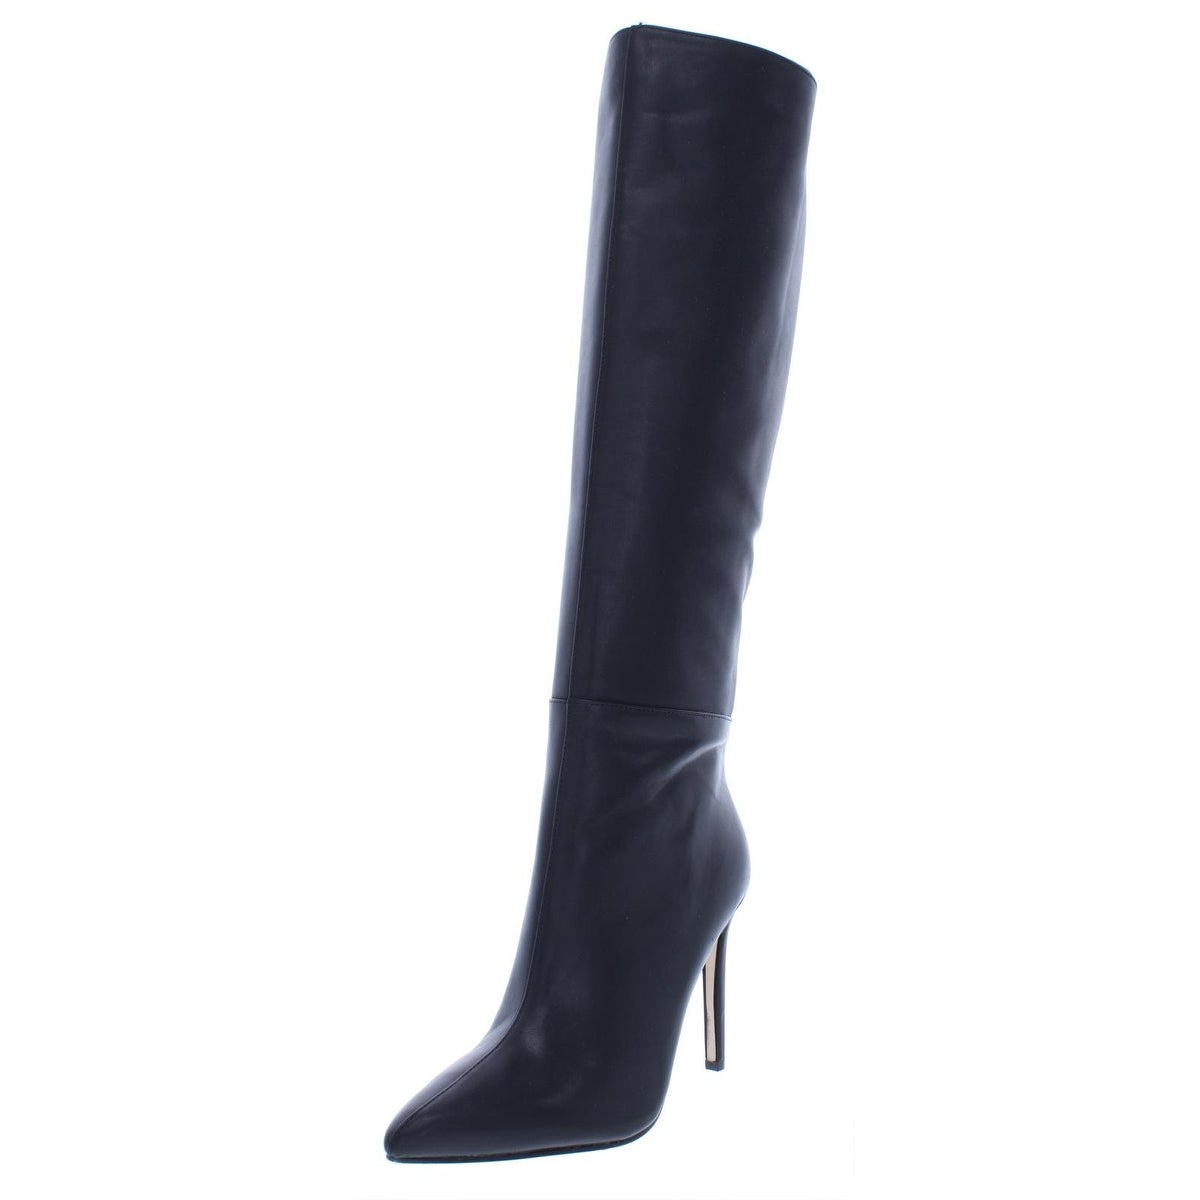 abe70af5b5d Buy Guess Women's Boots Online at Overstock   Our Best Women's Shoes ...